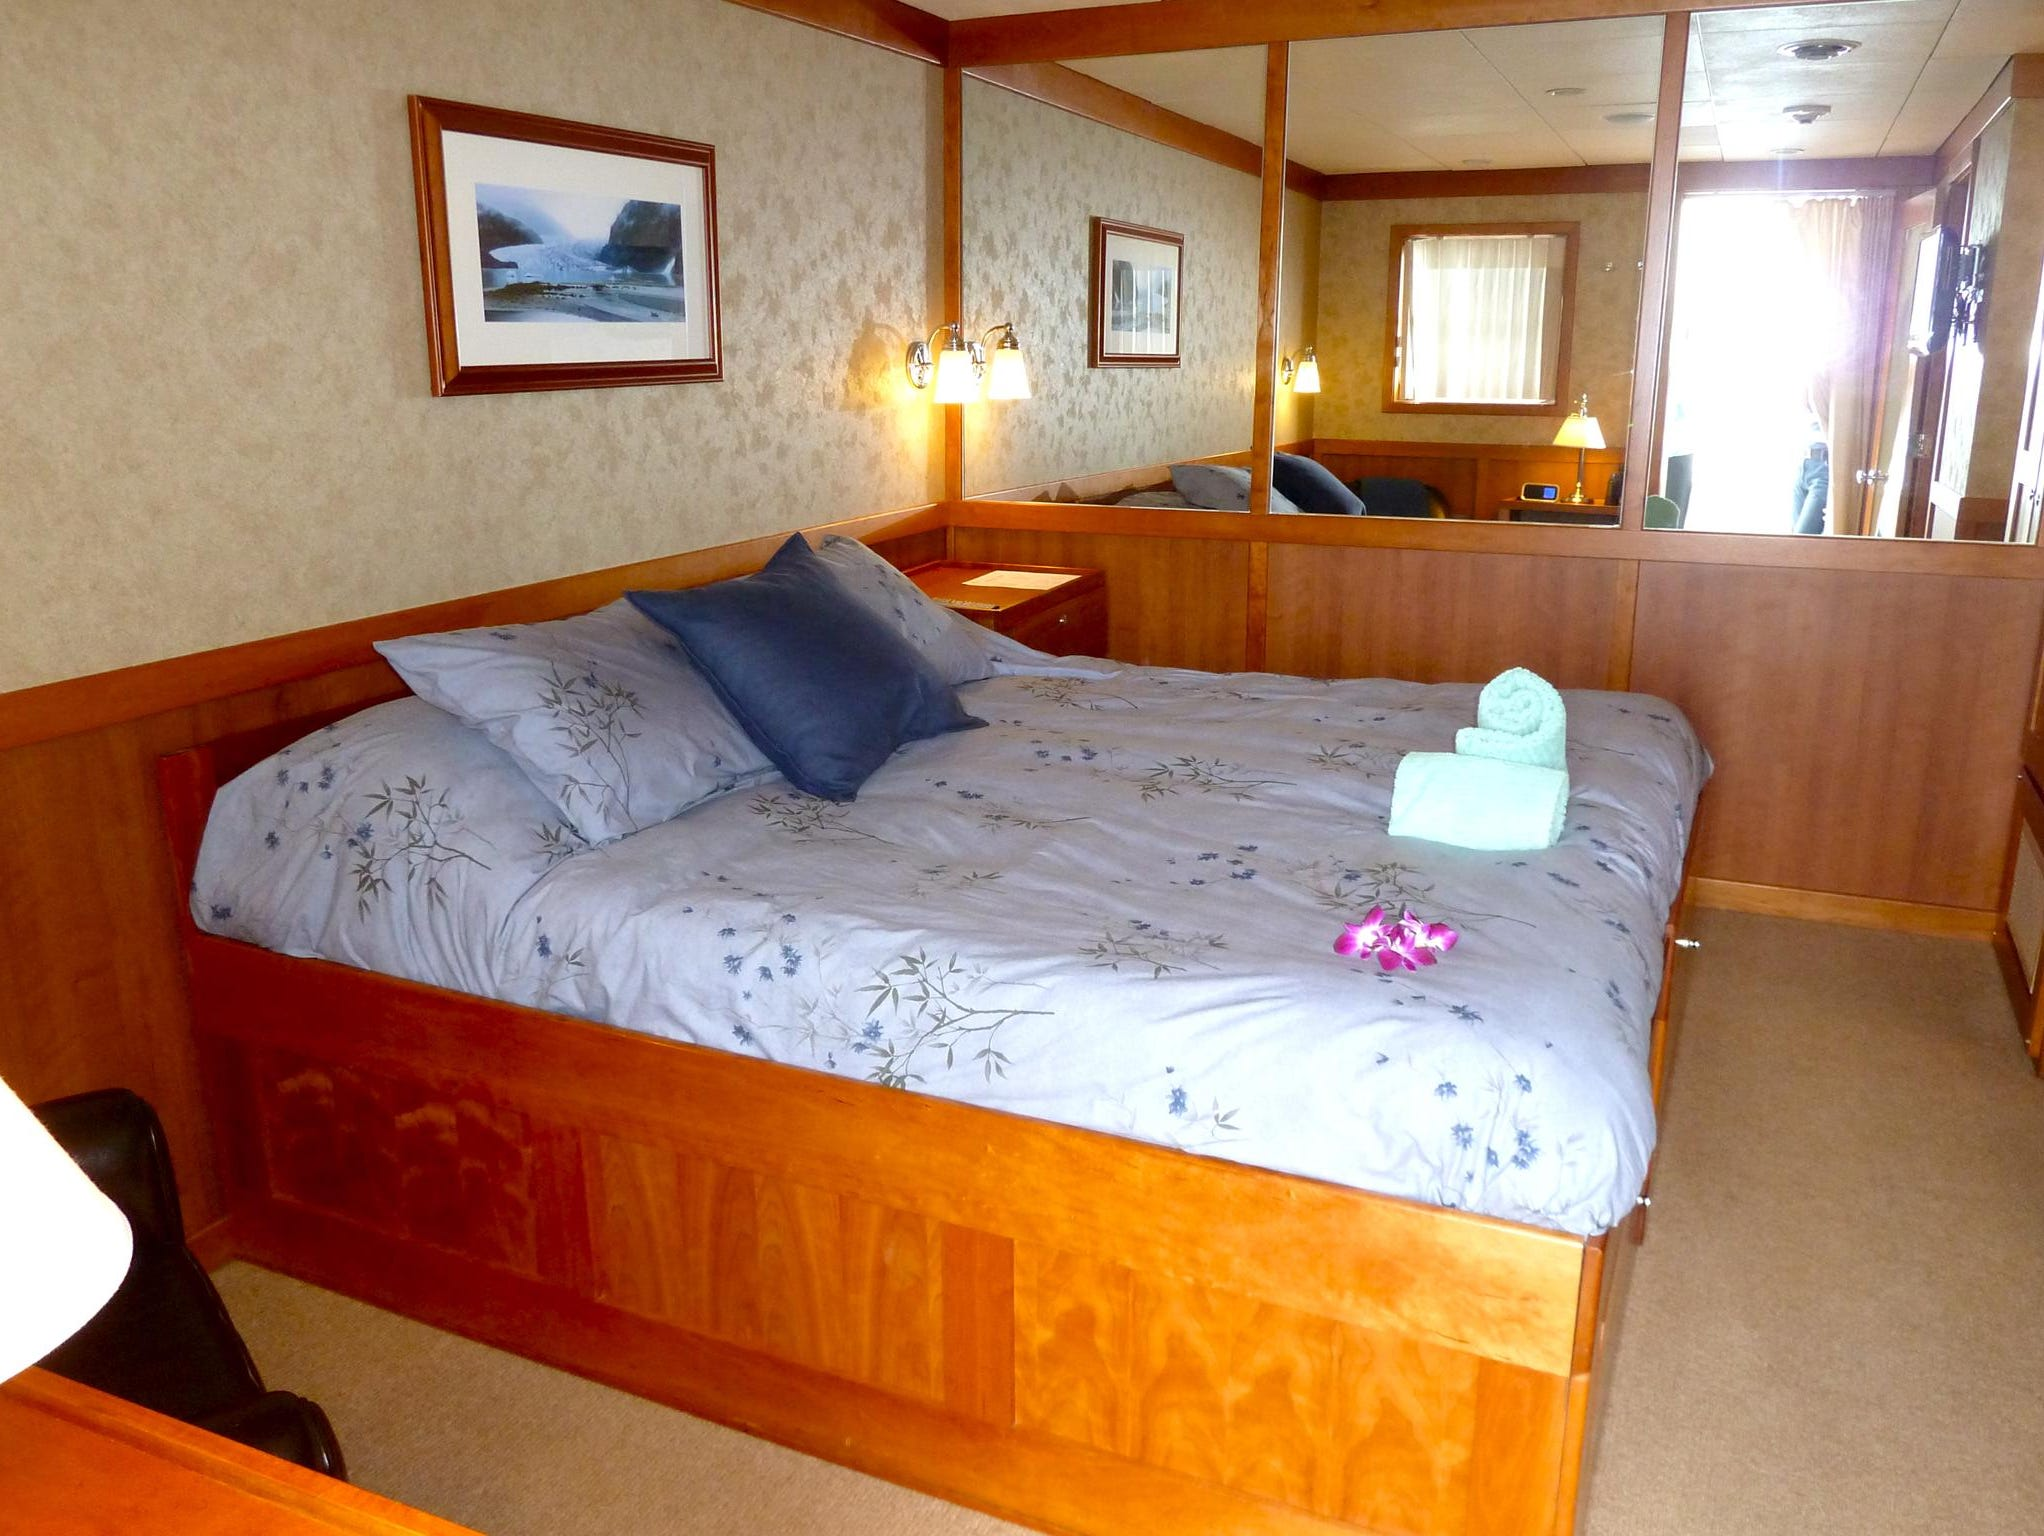 Two Commander Staterooms are fitted with a king-sized bed and have slightly more space than the next lowest tier, the Master Staterooms. There is also a nook with sink as well as a separate bathroom with toilet and shower.